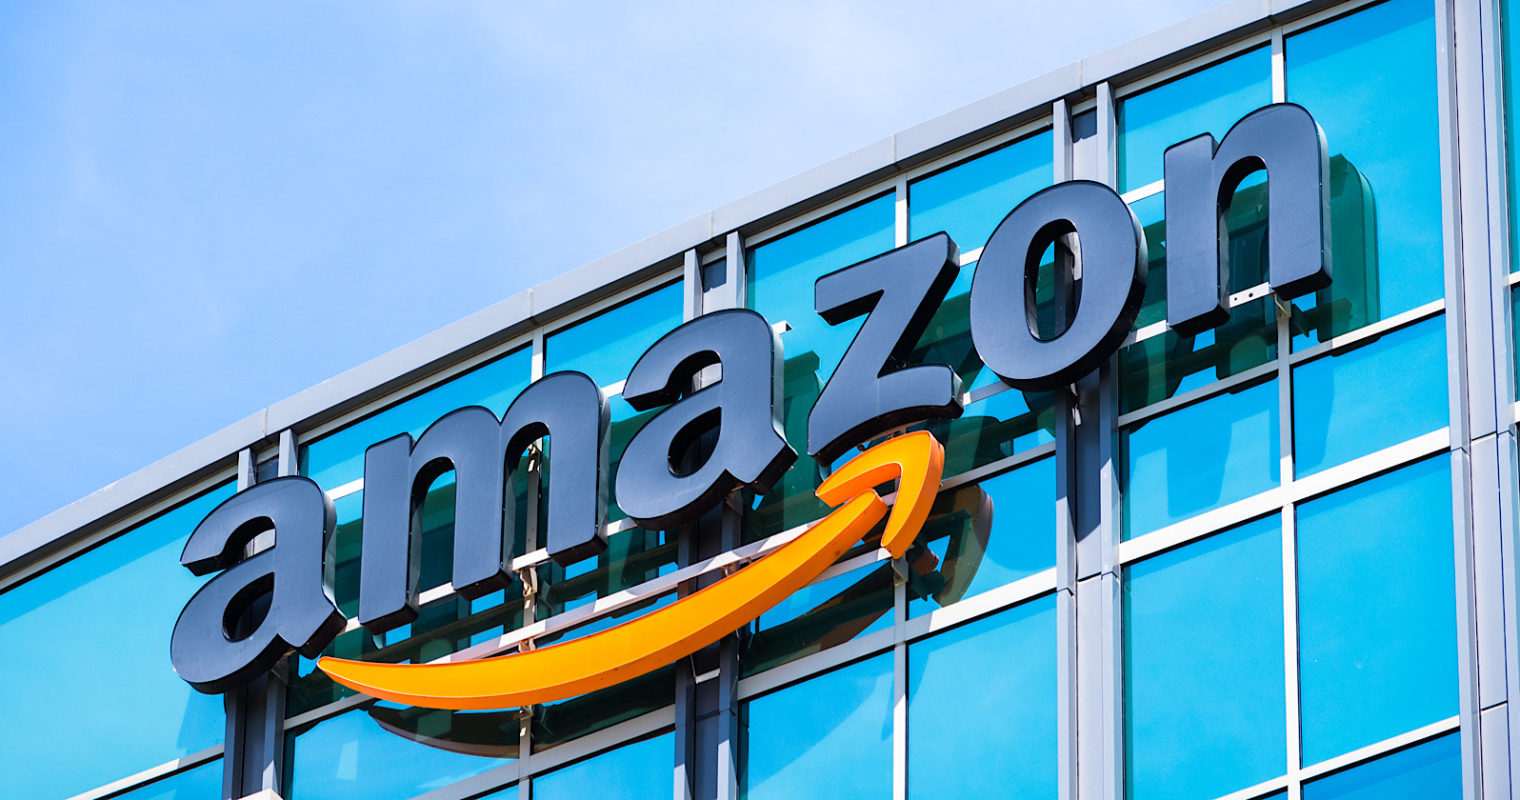 Amazon Sponsored Product Ads Are Rising in Price, New Report Says